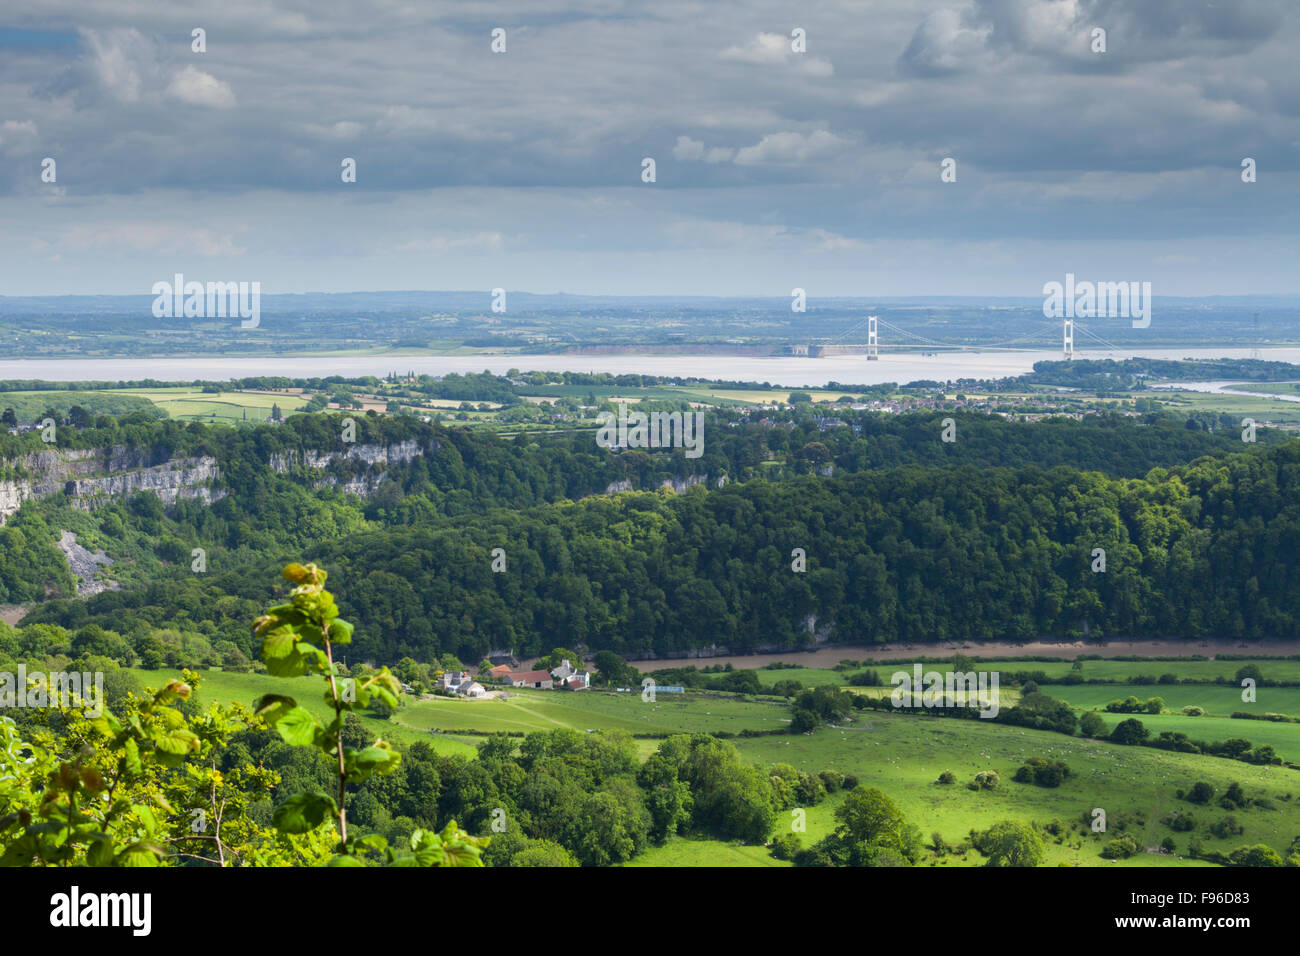 From the 'Eagles Nest' viewpoint at Wynd Cliff of the River Wye, Severn Estuary and M48 Suspension Bridge - Stock Image